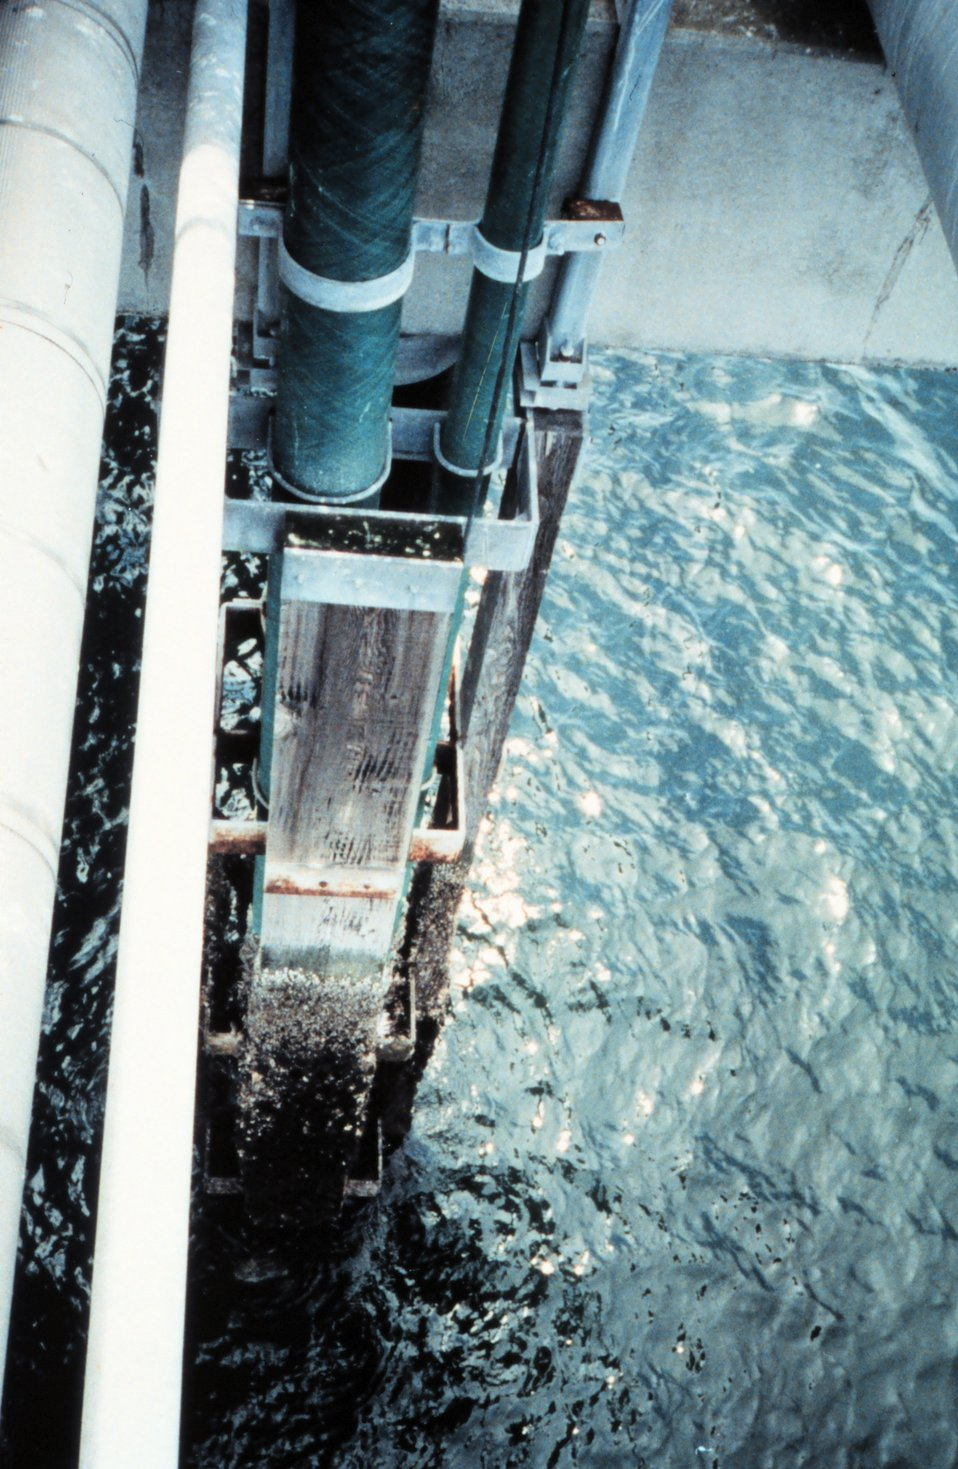 The tide gage installation at Cherry Point